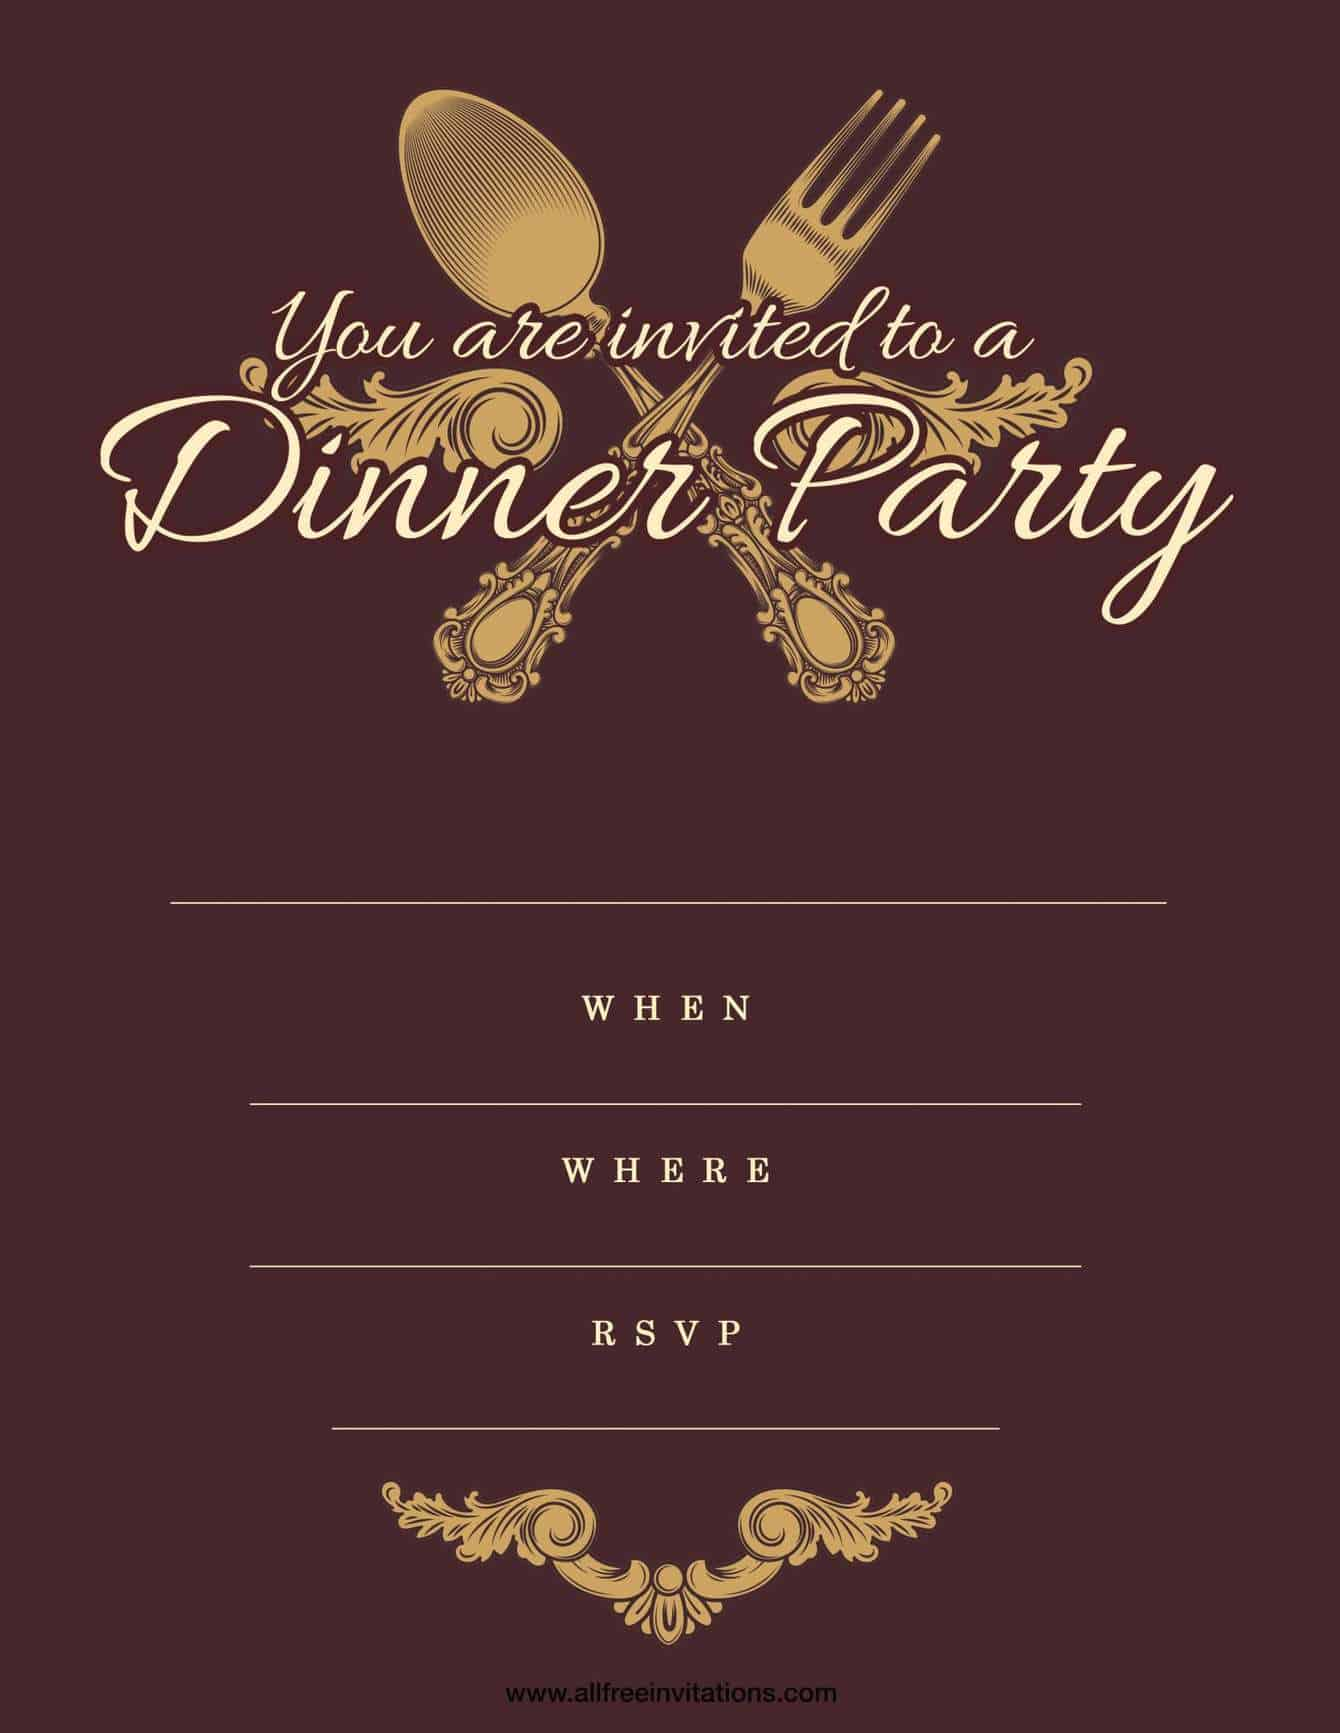 Dinner party invitation antique fork and spoon gold design